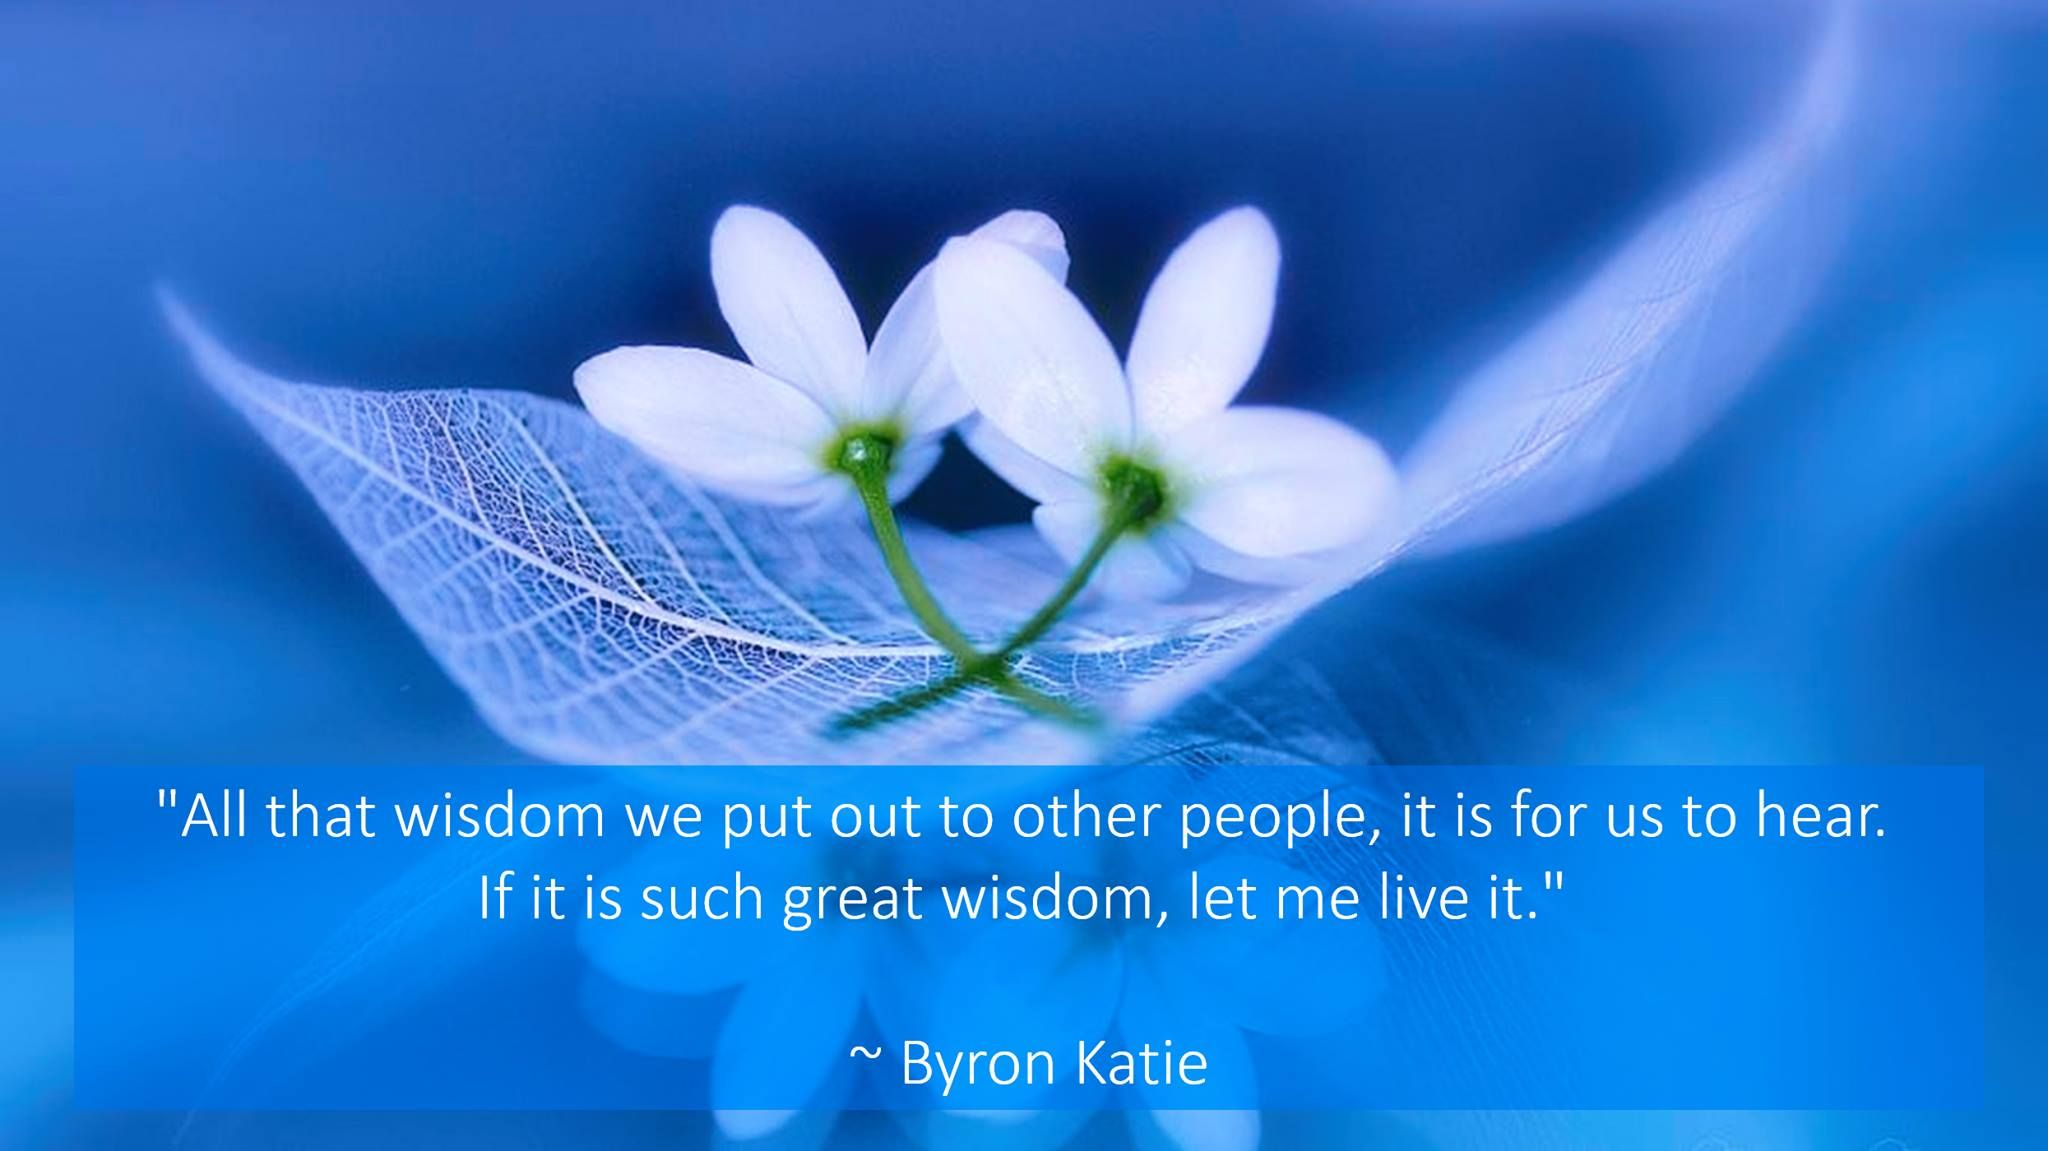 Byron Katie Quotes All That Wisdom We Put Out To Other People It Is For Us To Hear